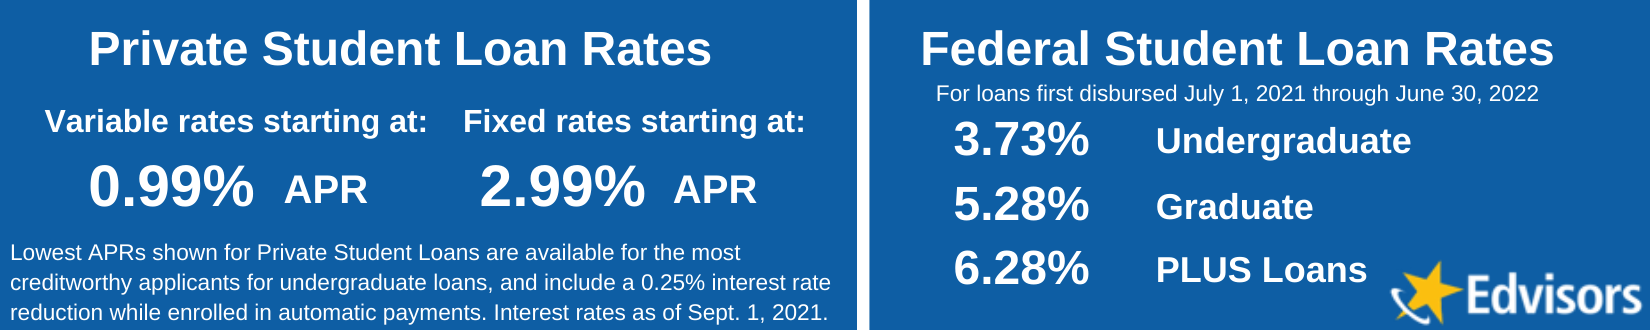 compare student loan interest rates 2019